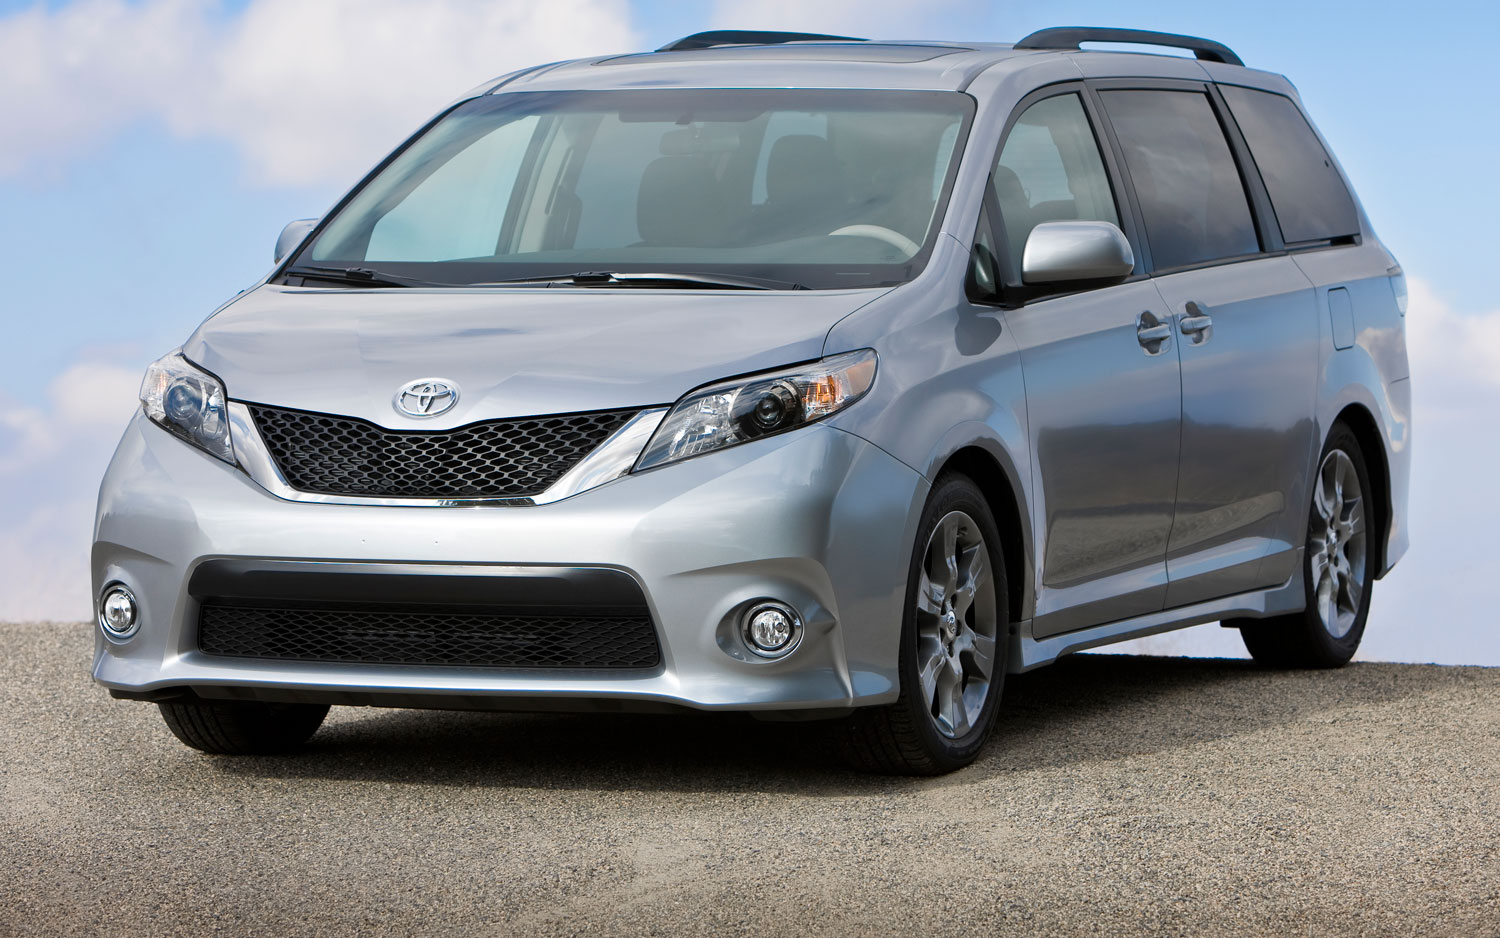 2013 toyota sienna drops i 4 variant pricing revealed on 2013 rh motortrend com 2013 toyota corolla user manual pdf 2012 toyota sienna user manual